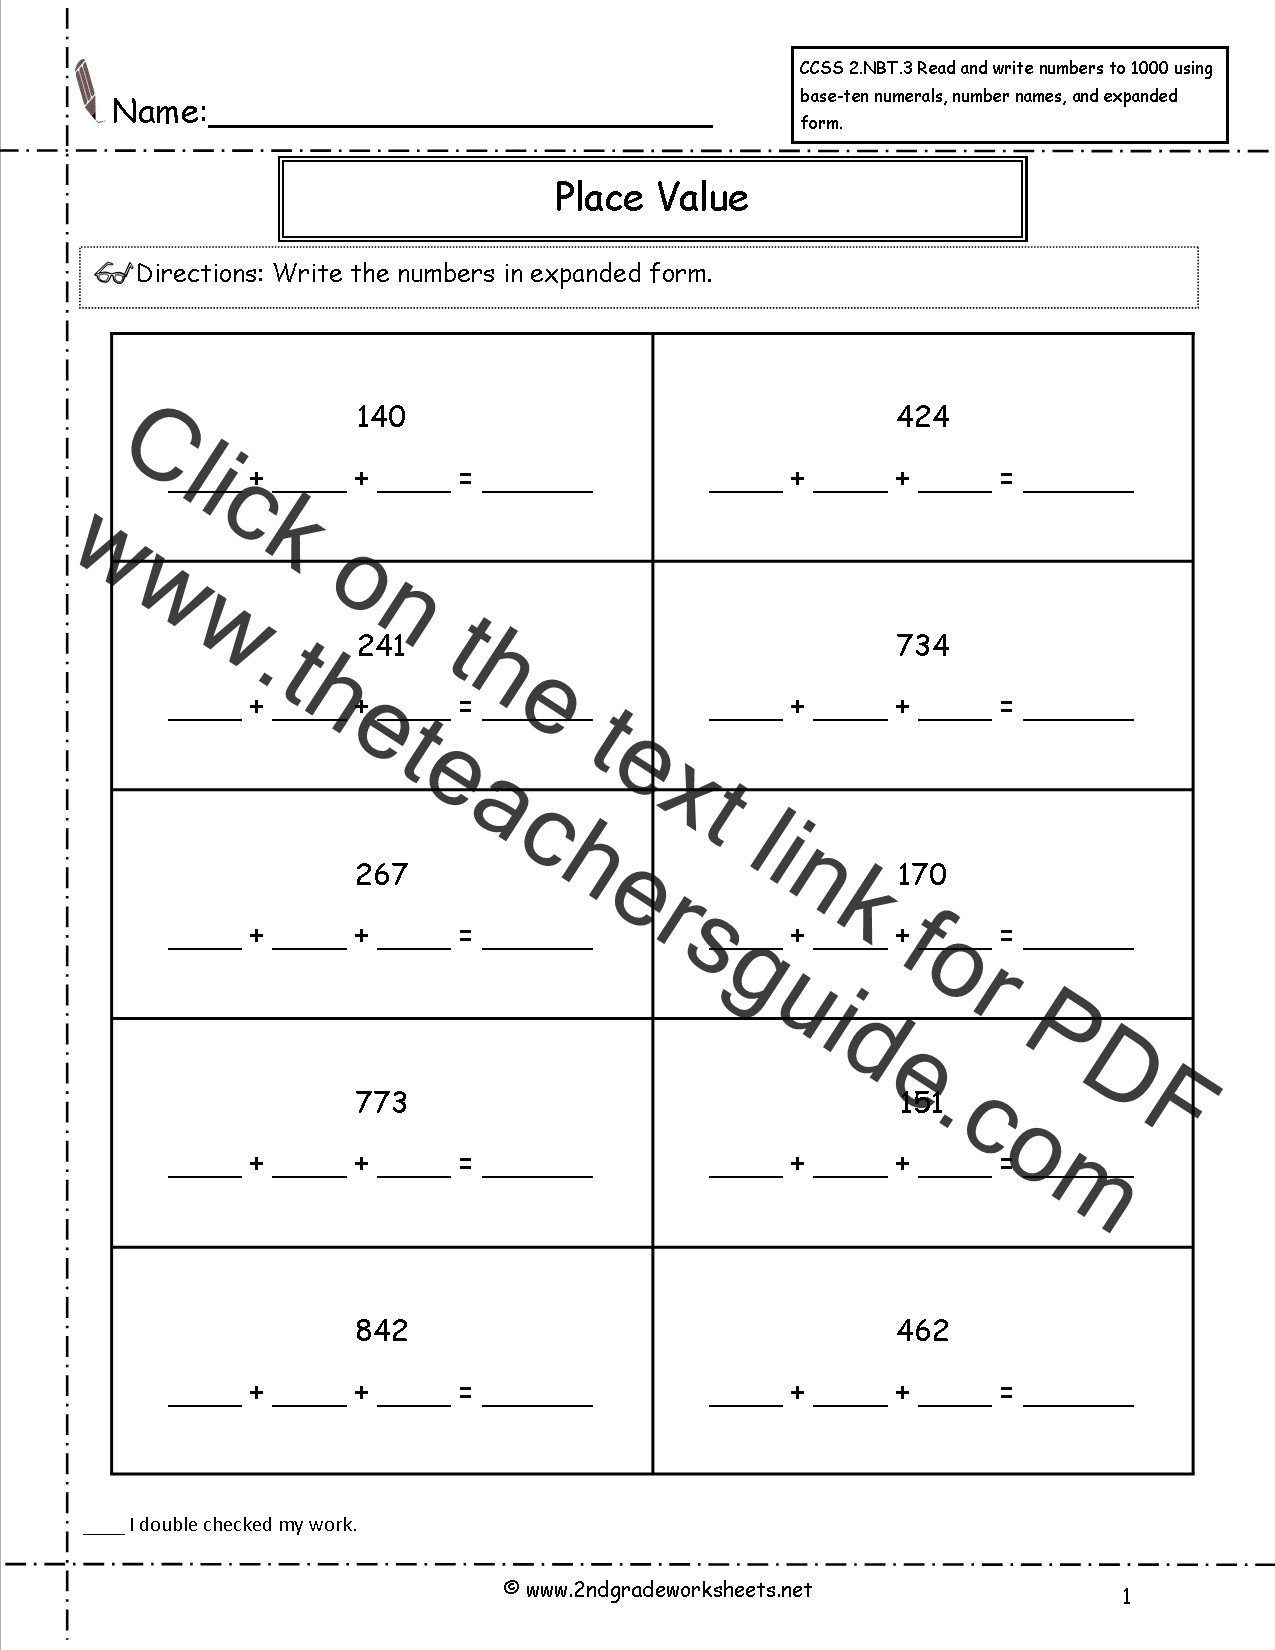 Expanded Notation Worksheets Ccss 2 Nbt 3 Worksheets Place Value Worksheets Read and